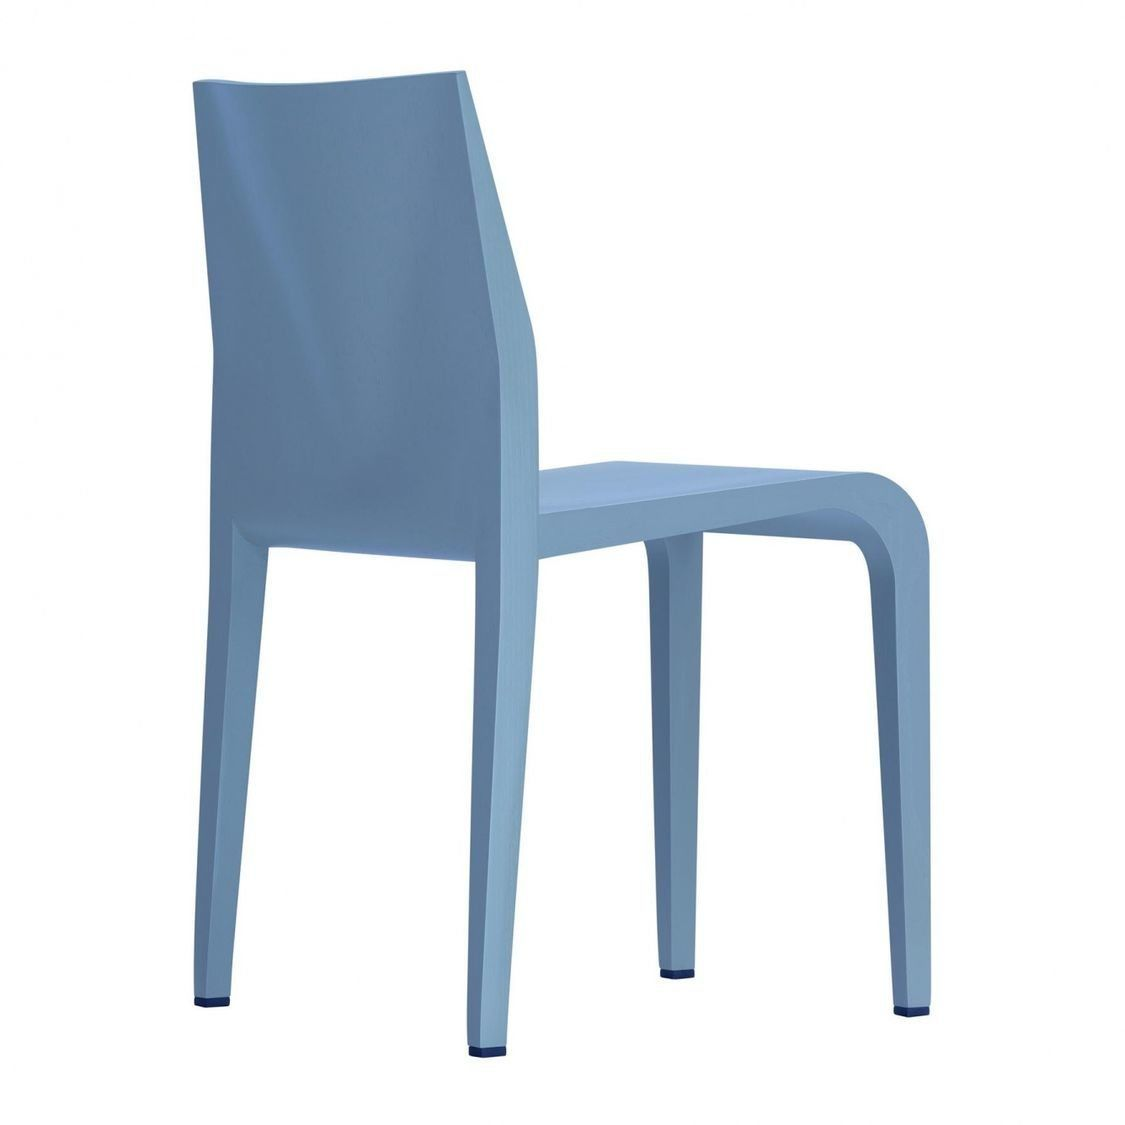 316 Laleggera Chair Stuhl | Alias | AmbienteDirect.com